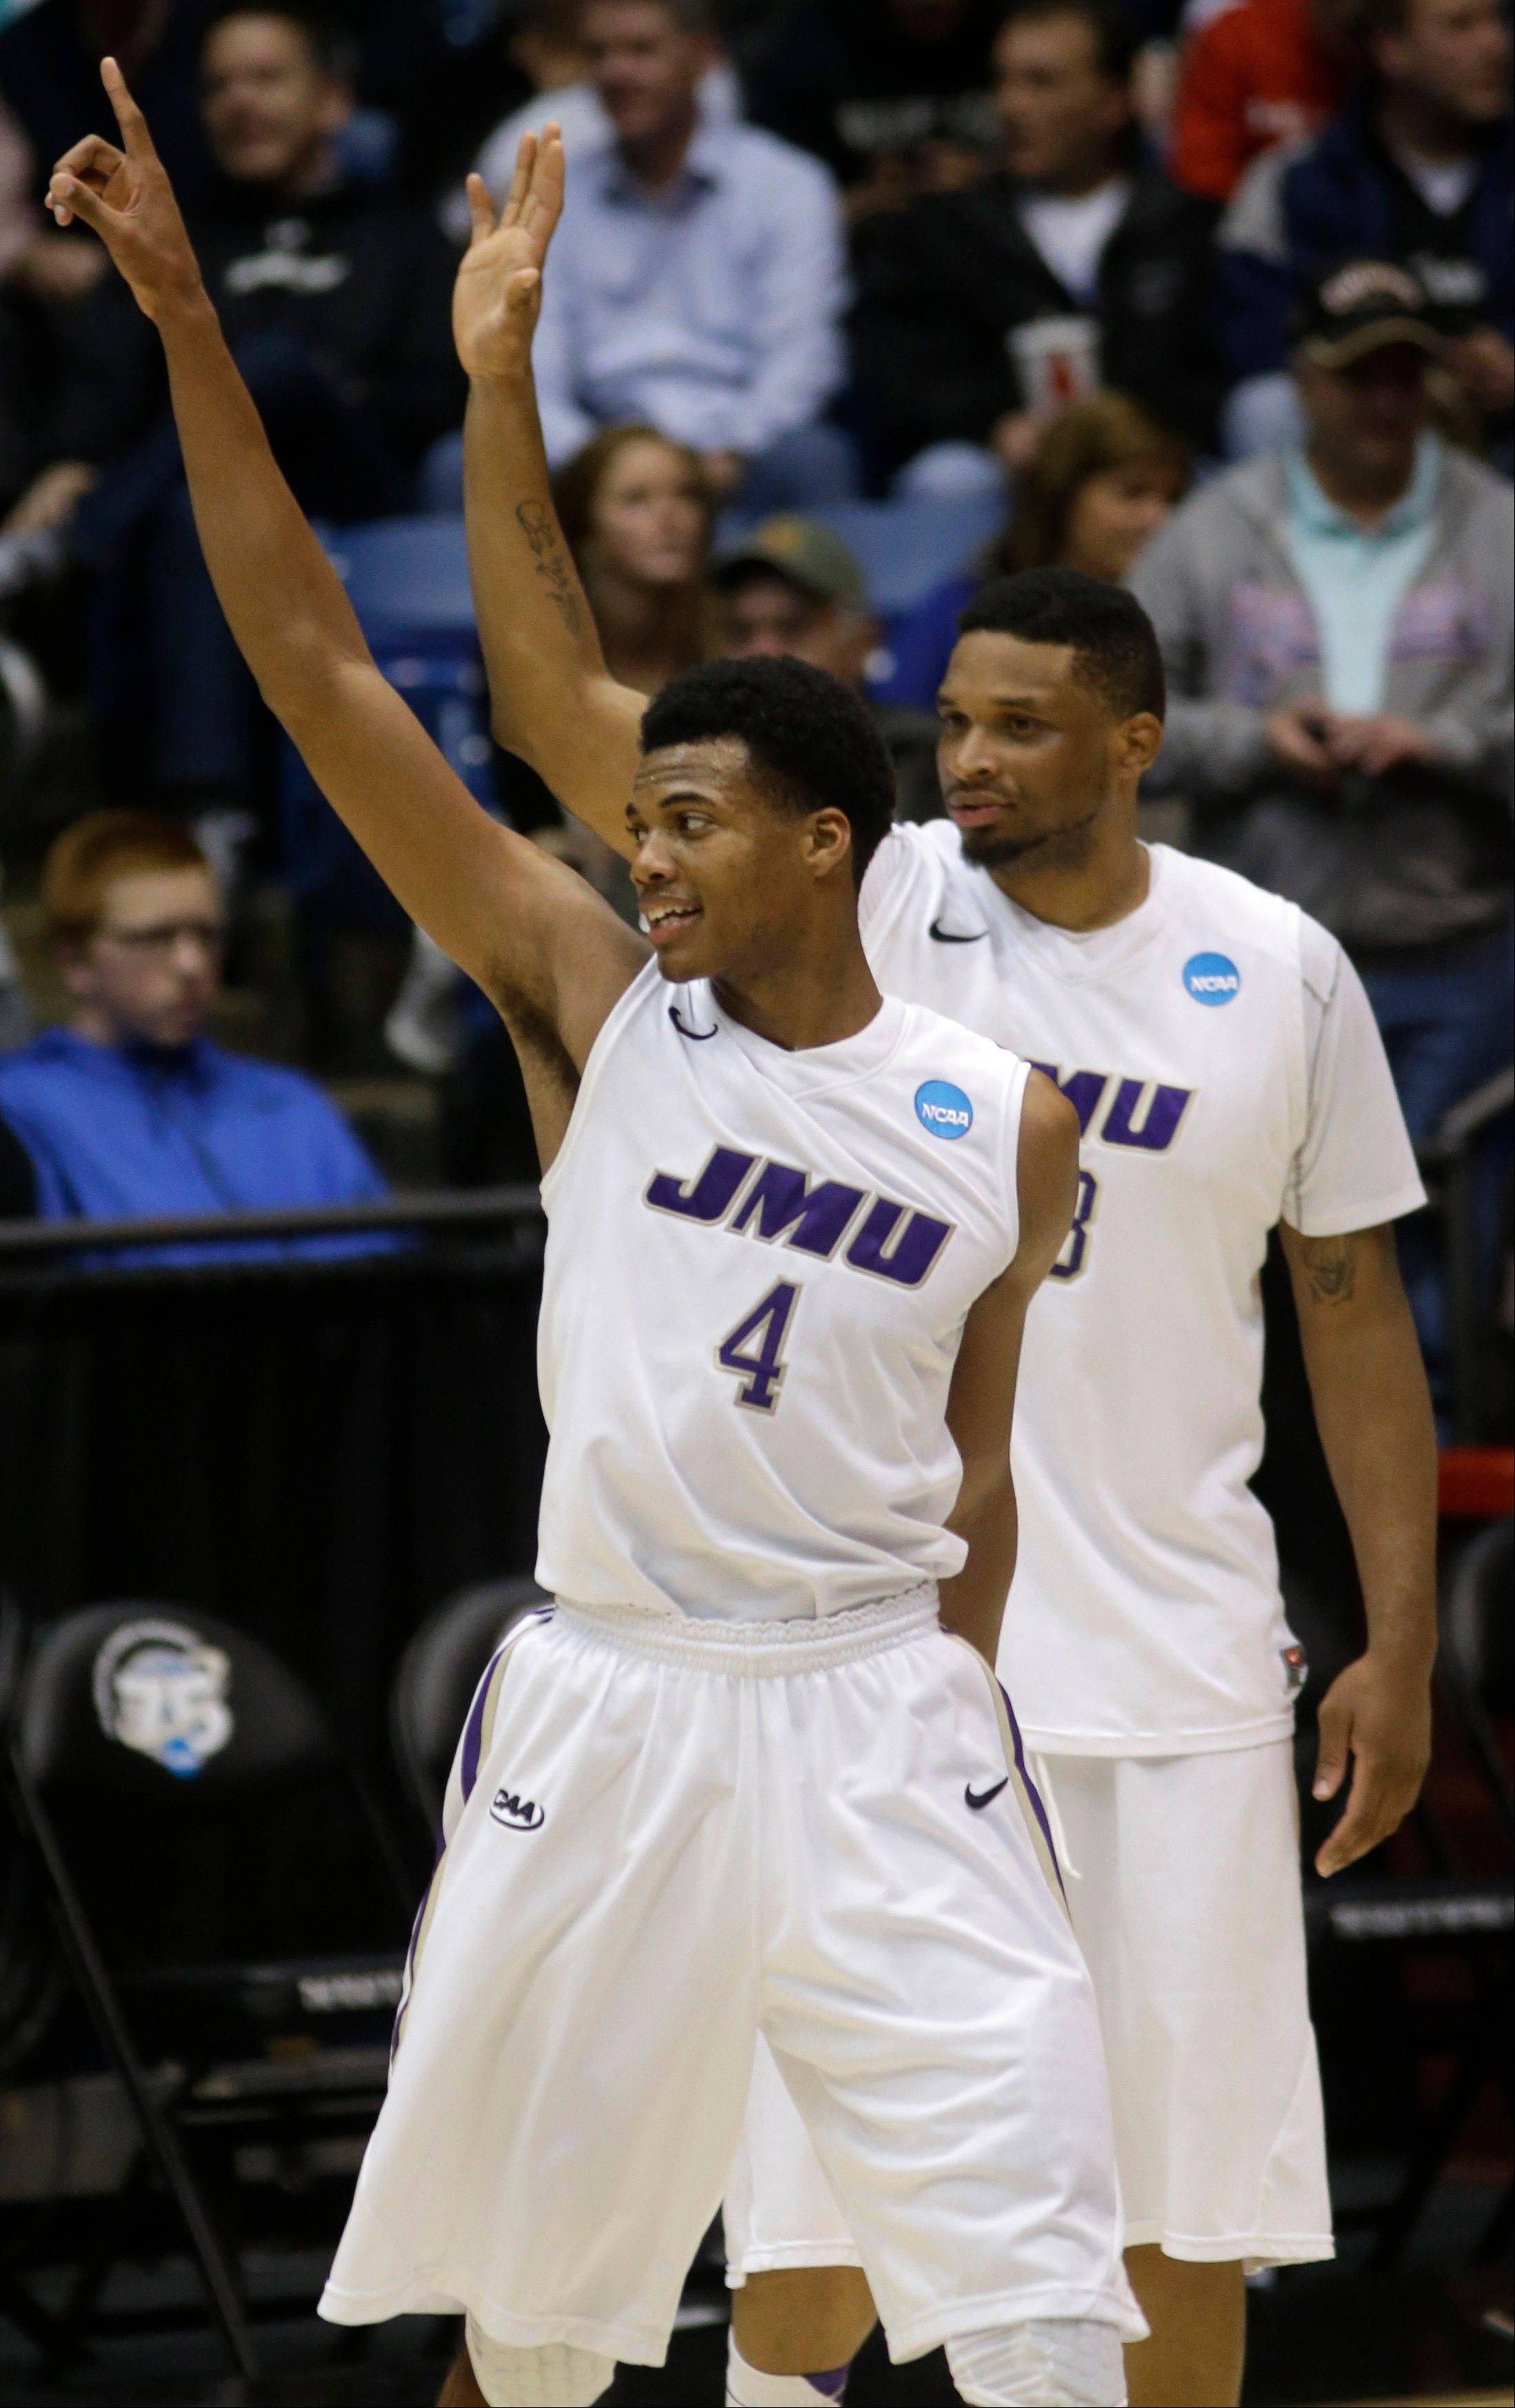 James Madison guard Charles Cooke (4) and forward Rayshawn Goins celebrate after they defeated LIU Brooklyn 68-55 in a first-round game of the NCAA college basketball tournament on Wednesday, March 20, 2013, in Dayton, Ohio.